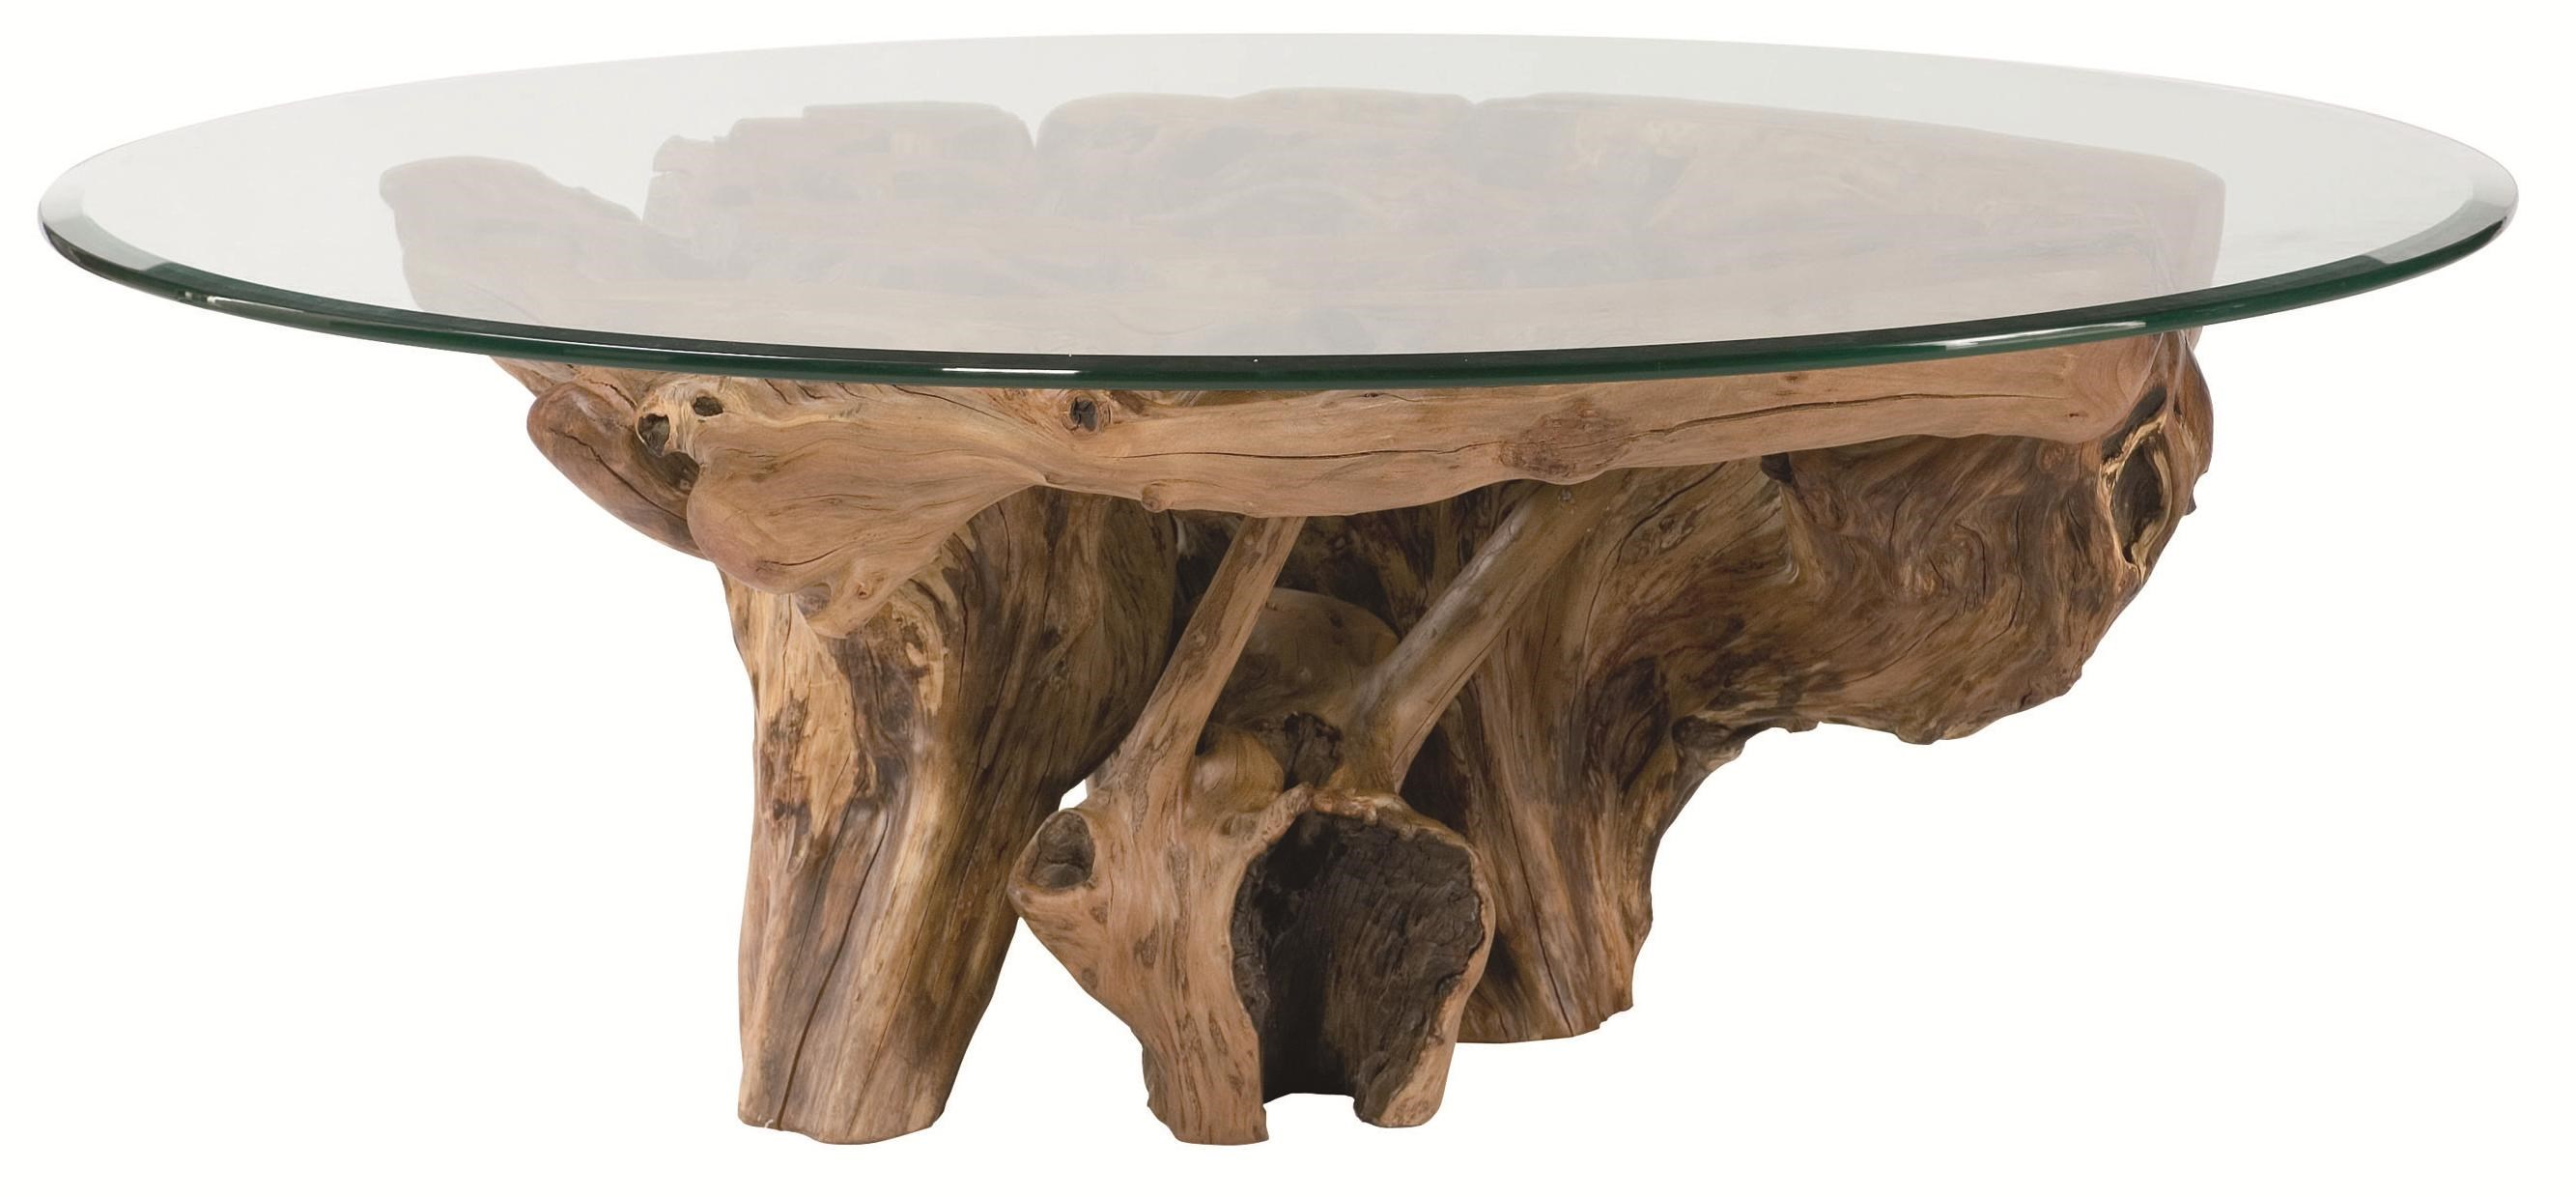 Hammary Hidden Treasures Root Ball Cocktail Table With Glass Top   Belfort  Furniture   Cocktail/Coffee Tables